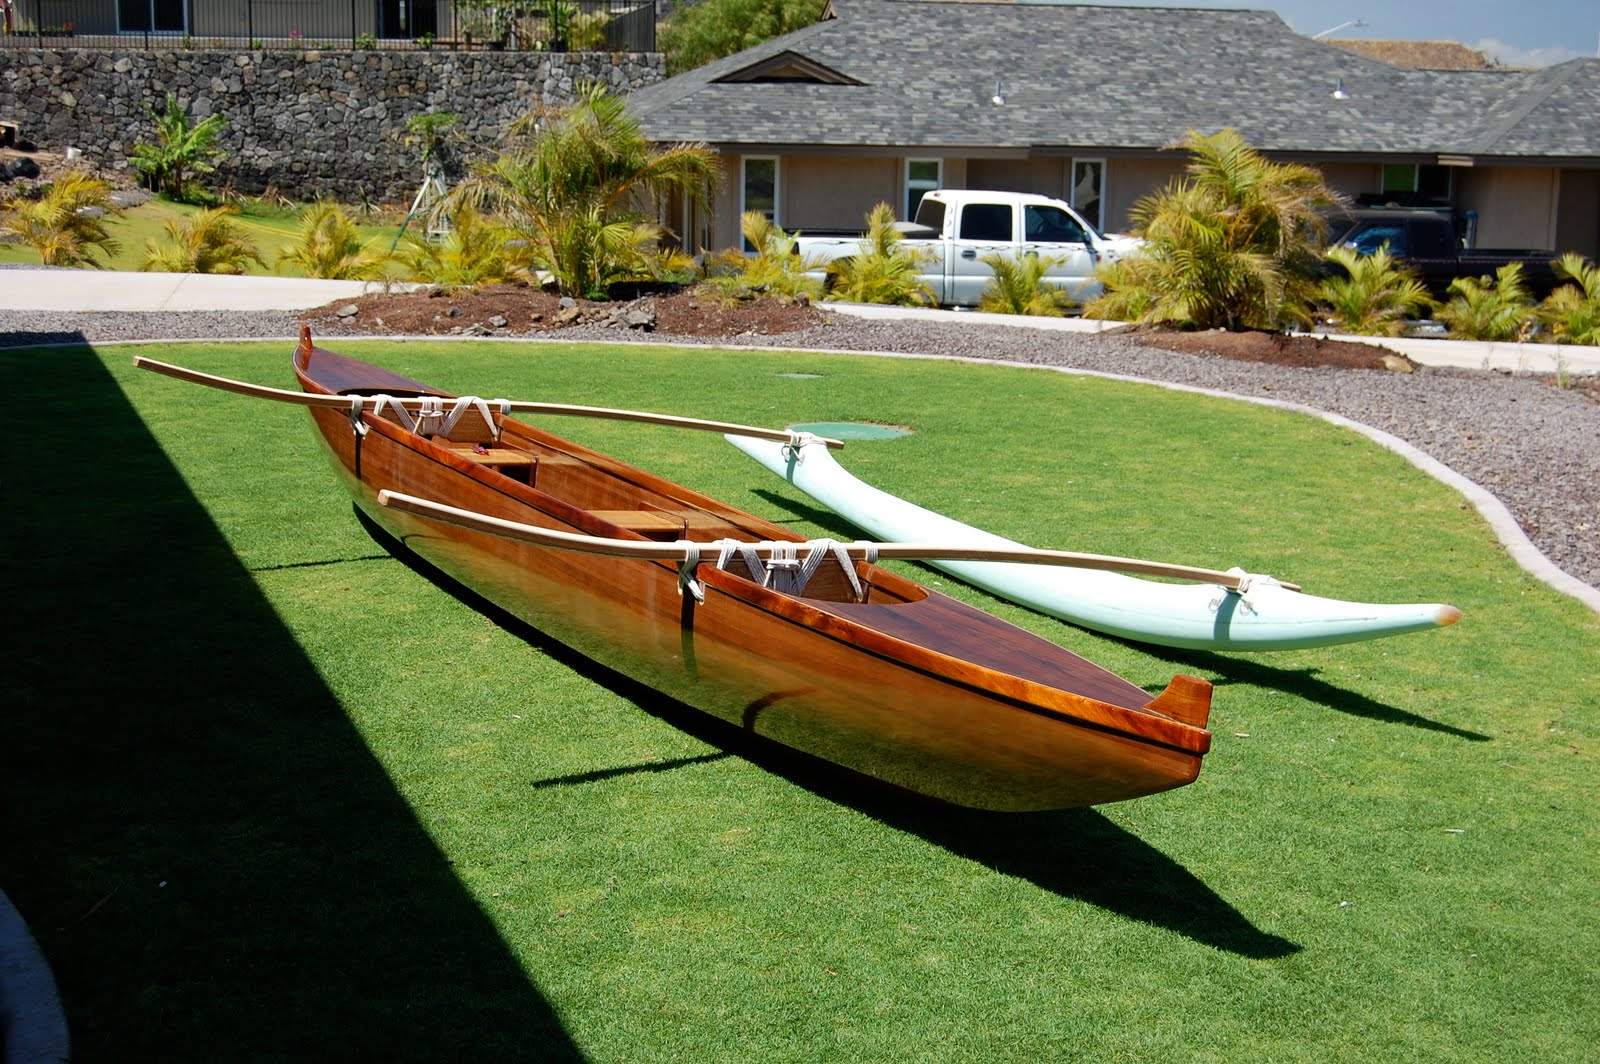 how to build an outrigger for a canoe